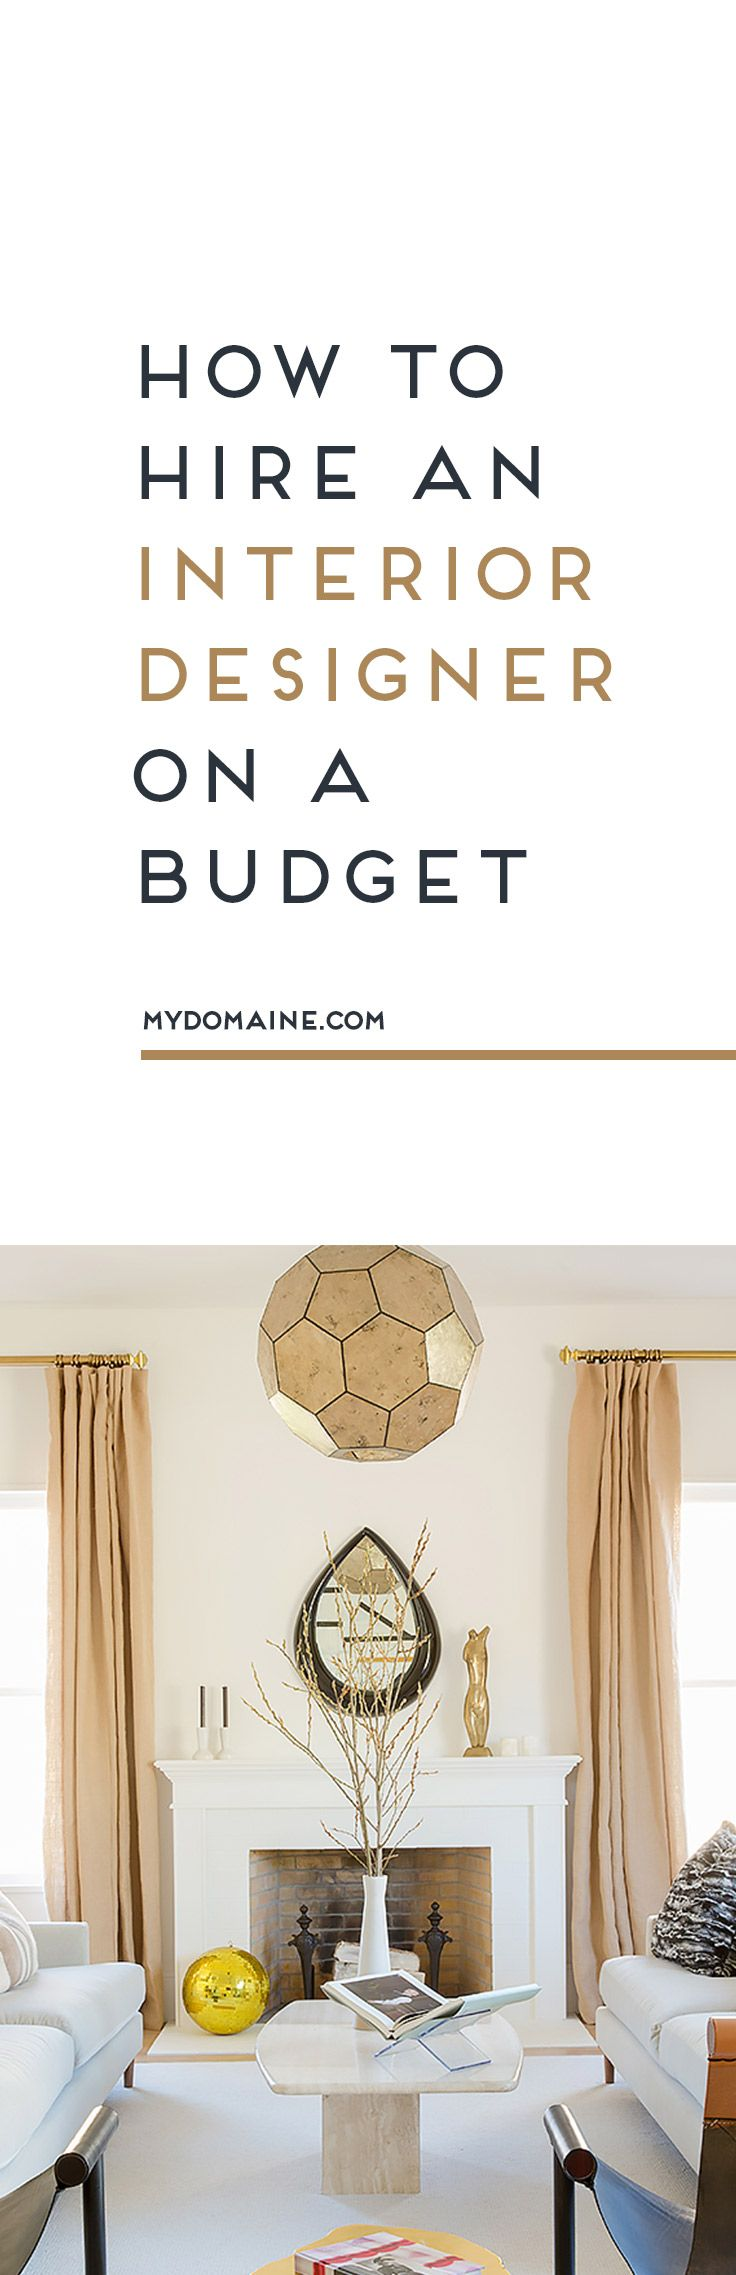 How To Hire An Interior Designer On A Budget Design ServicesDecorating TipsBusiness